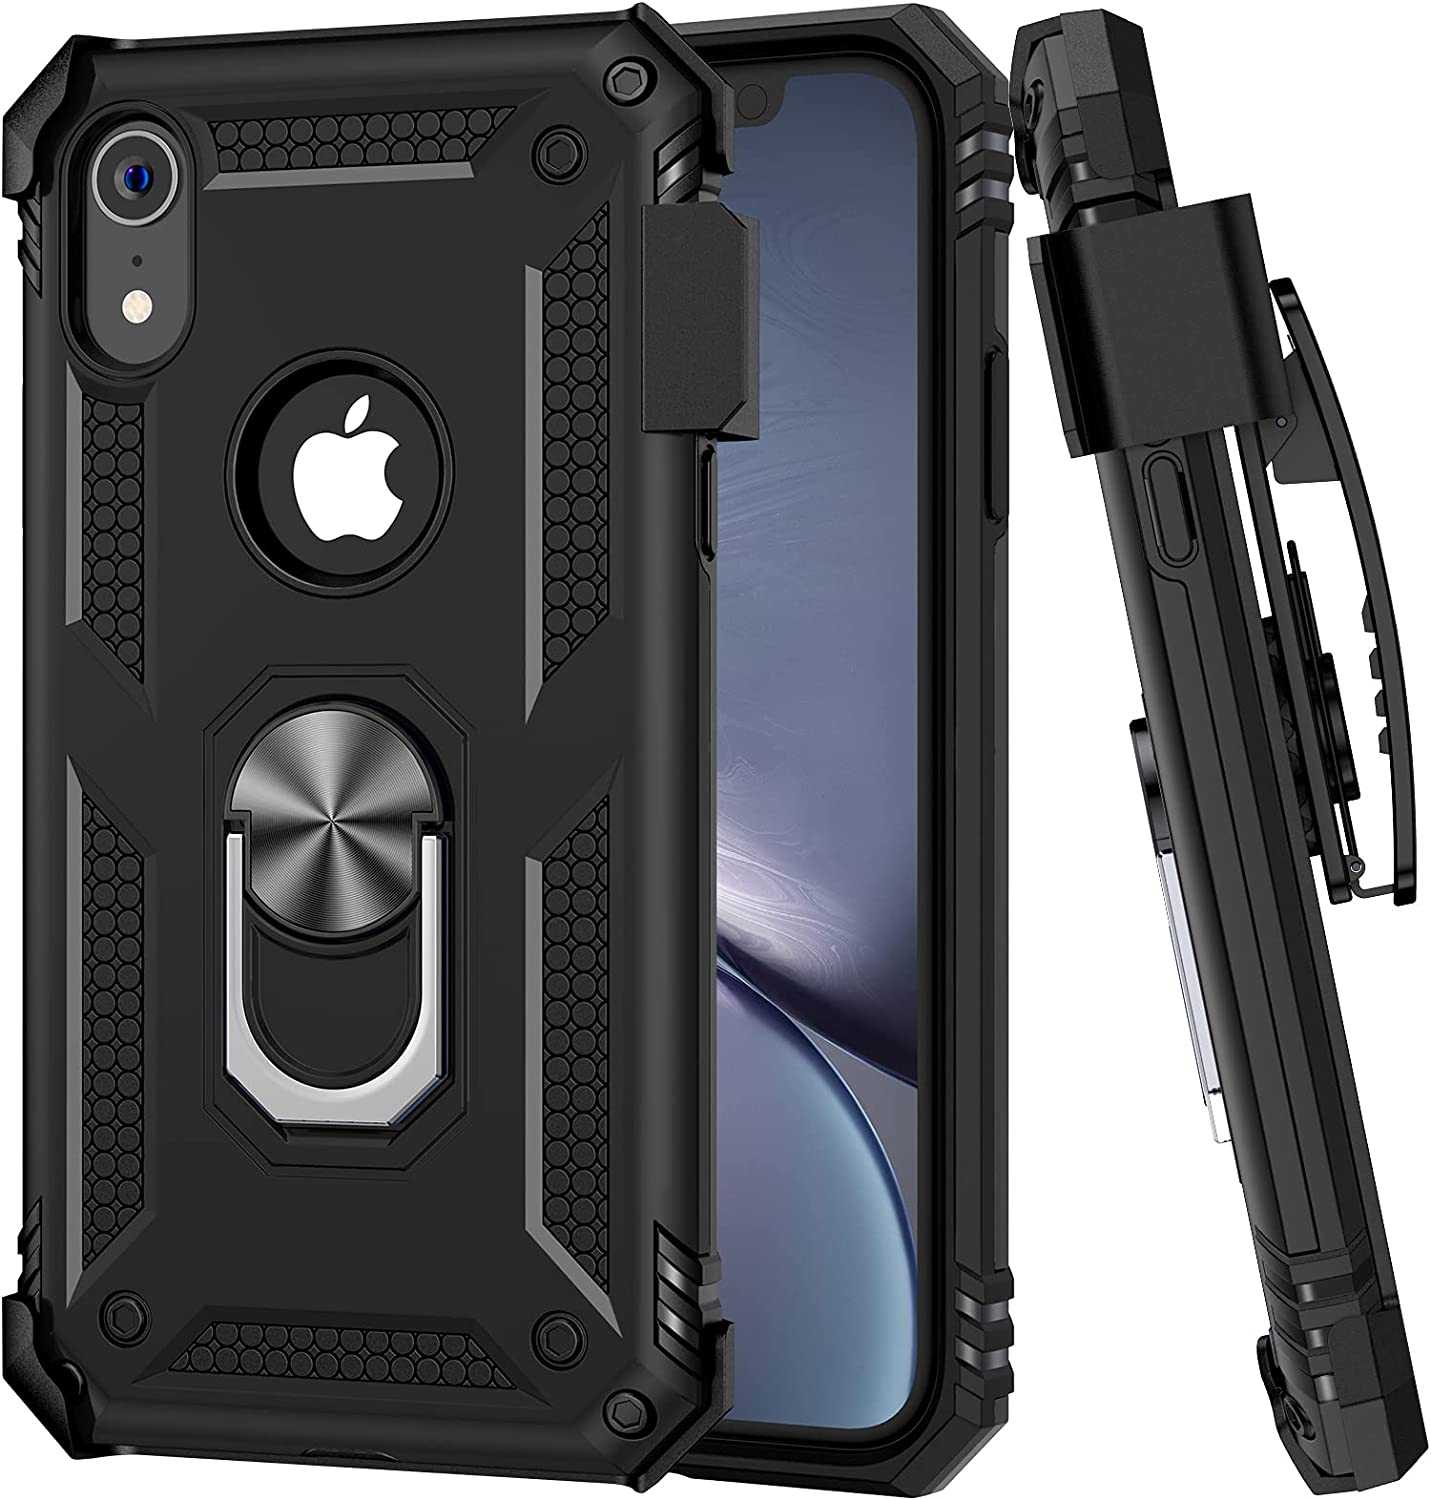 Ruky Case for iPhone XR with Belt Clip, iPhone XR Case with Ring Stand Kickstand Holder and Magnetic Dual Layer Heavy Duty Military Grade Shockproof Drop Protective Cover for iPhone XR 6.1